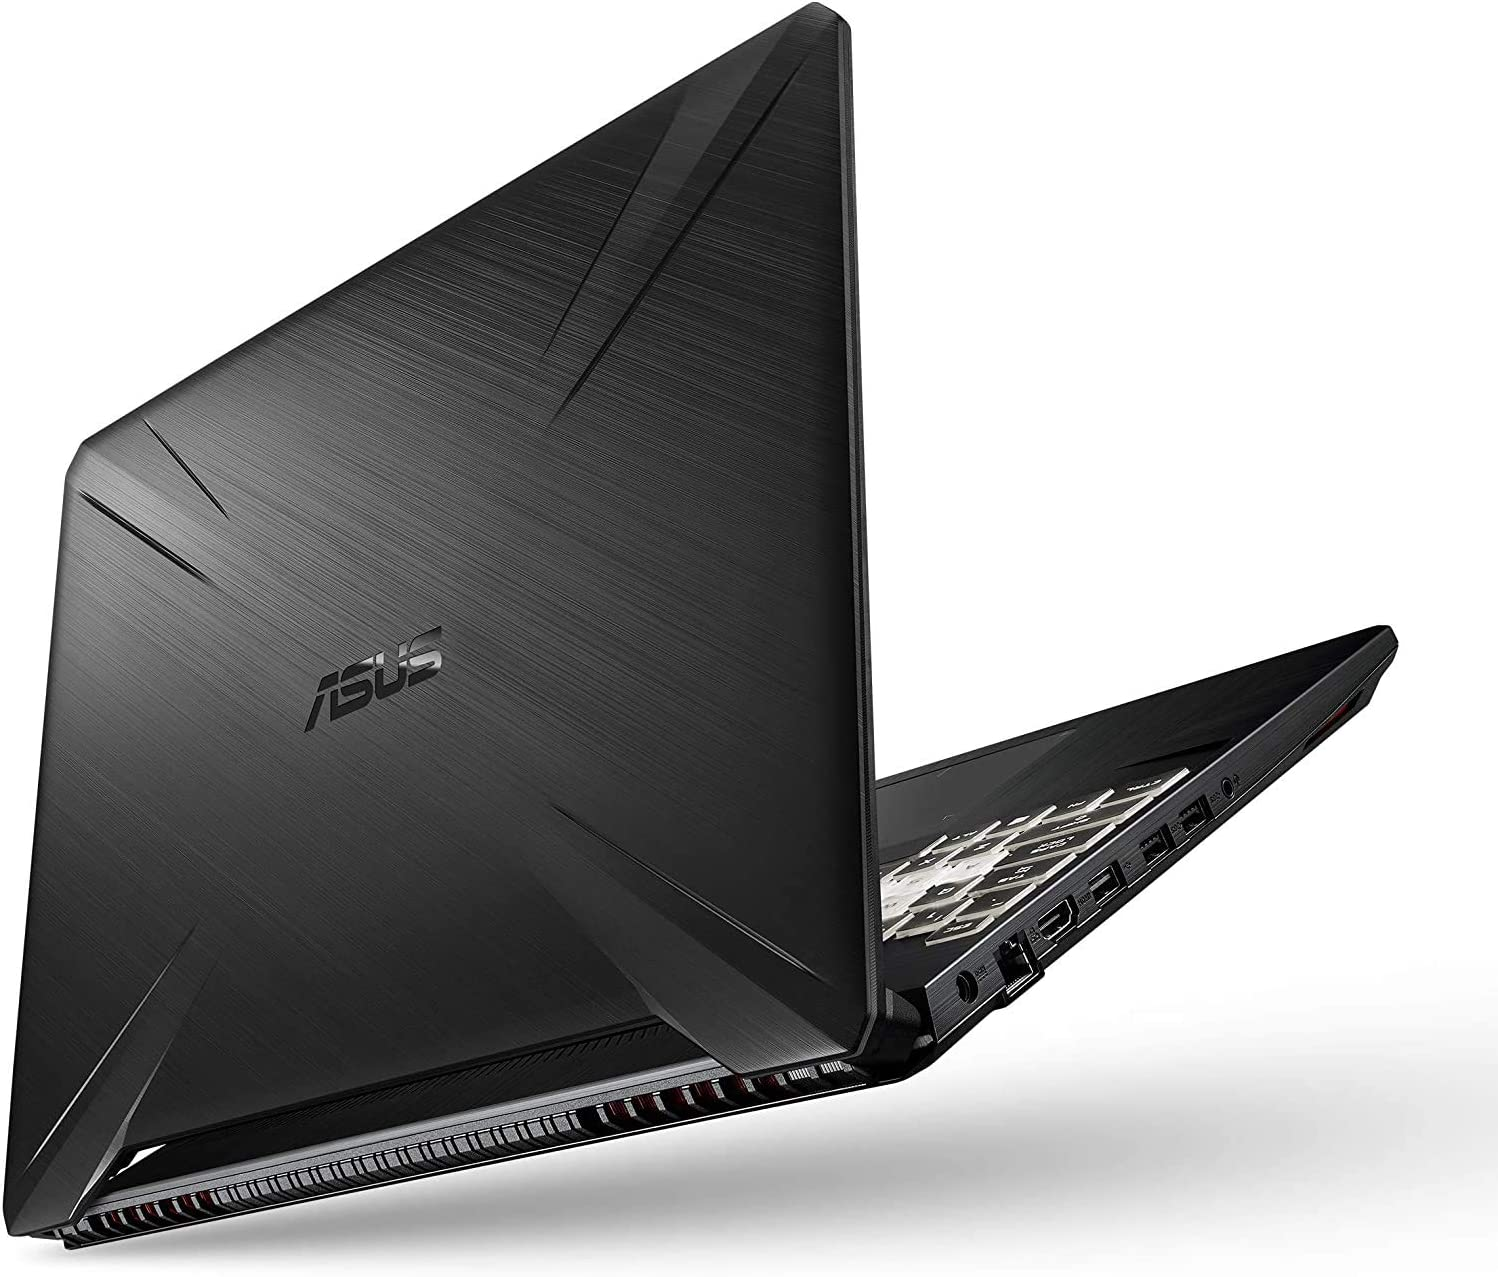 717TOJl2PsL. AC SL1500 10 Best Gaming Laptops for Rust in 2021 Reviews